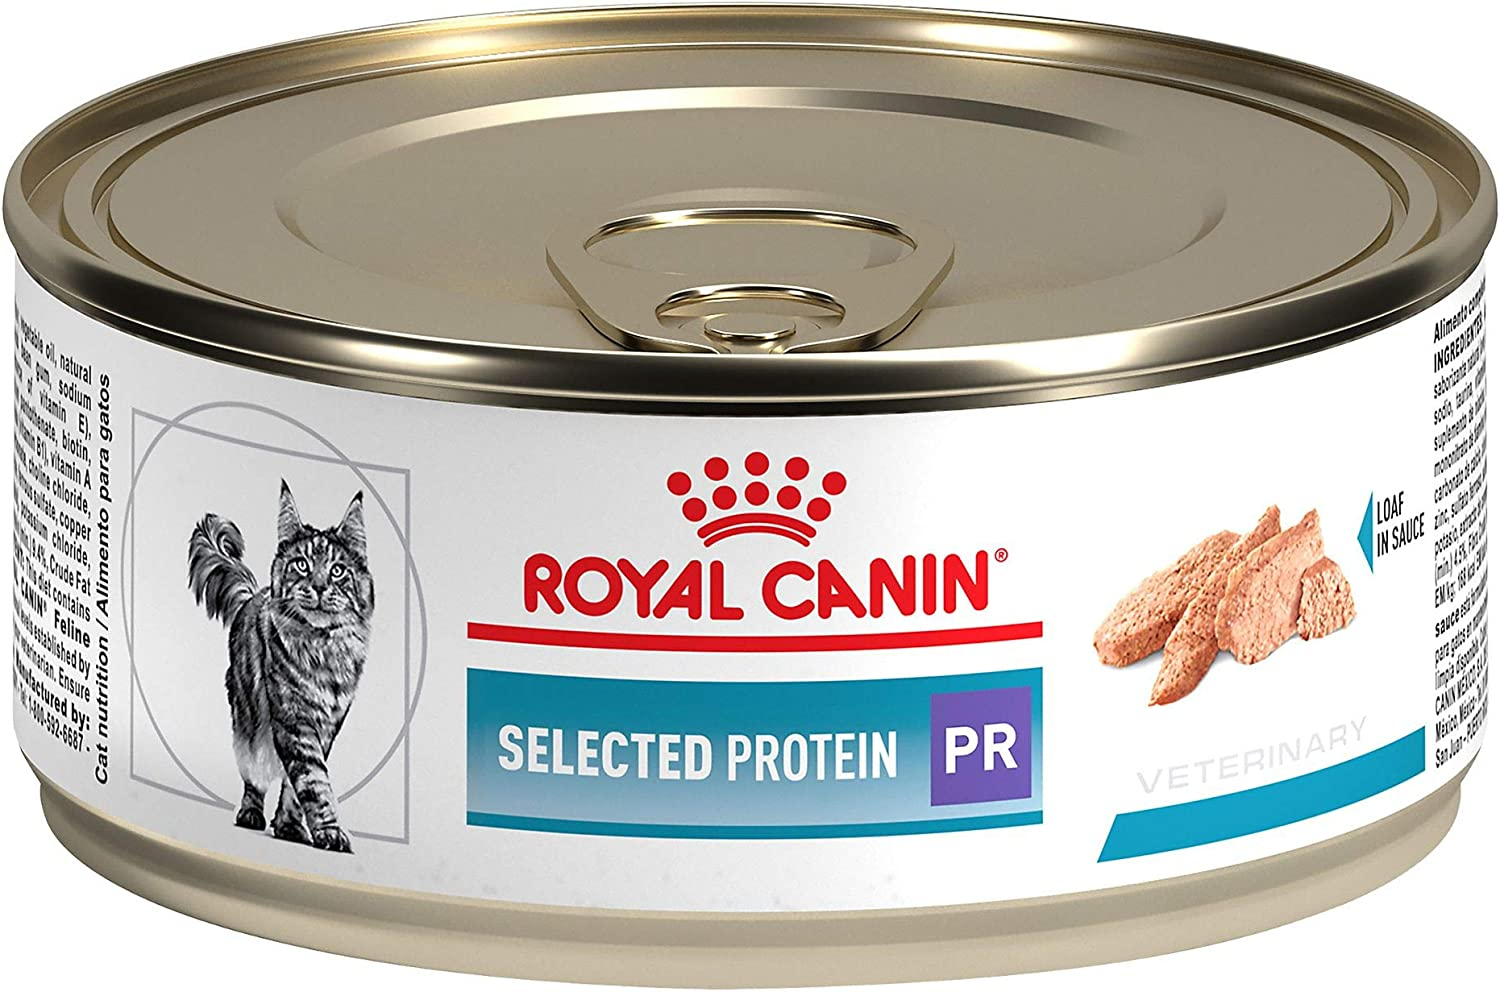 Royal Canin Feline Selected Protein PR Loaf in Sauce Canned Cat Food, 5.9 oz